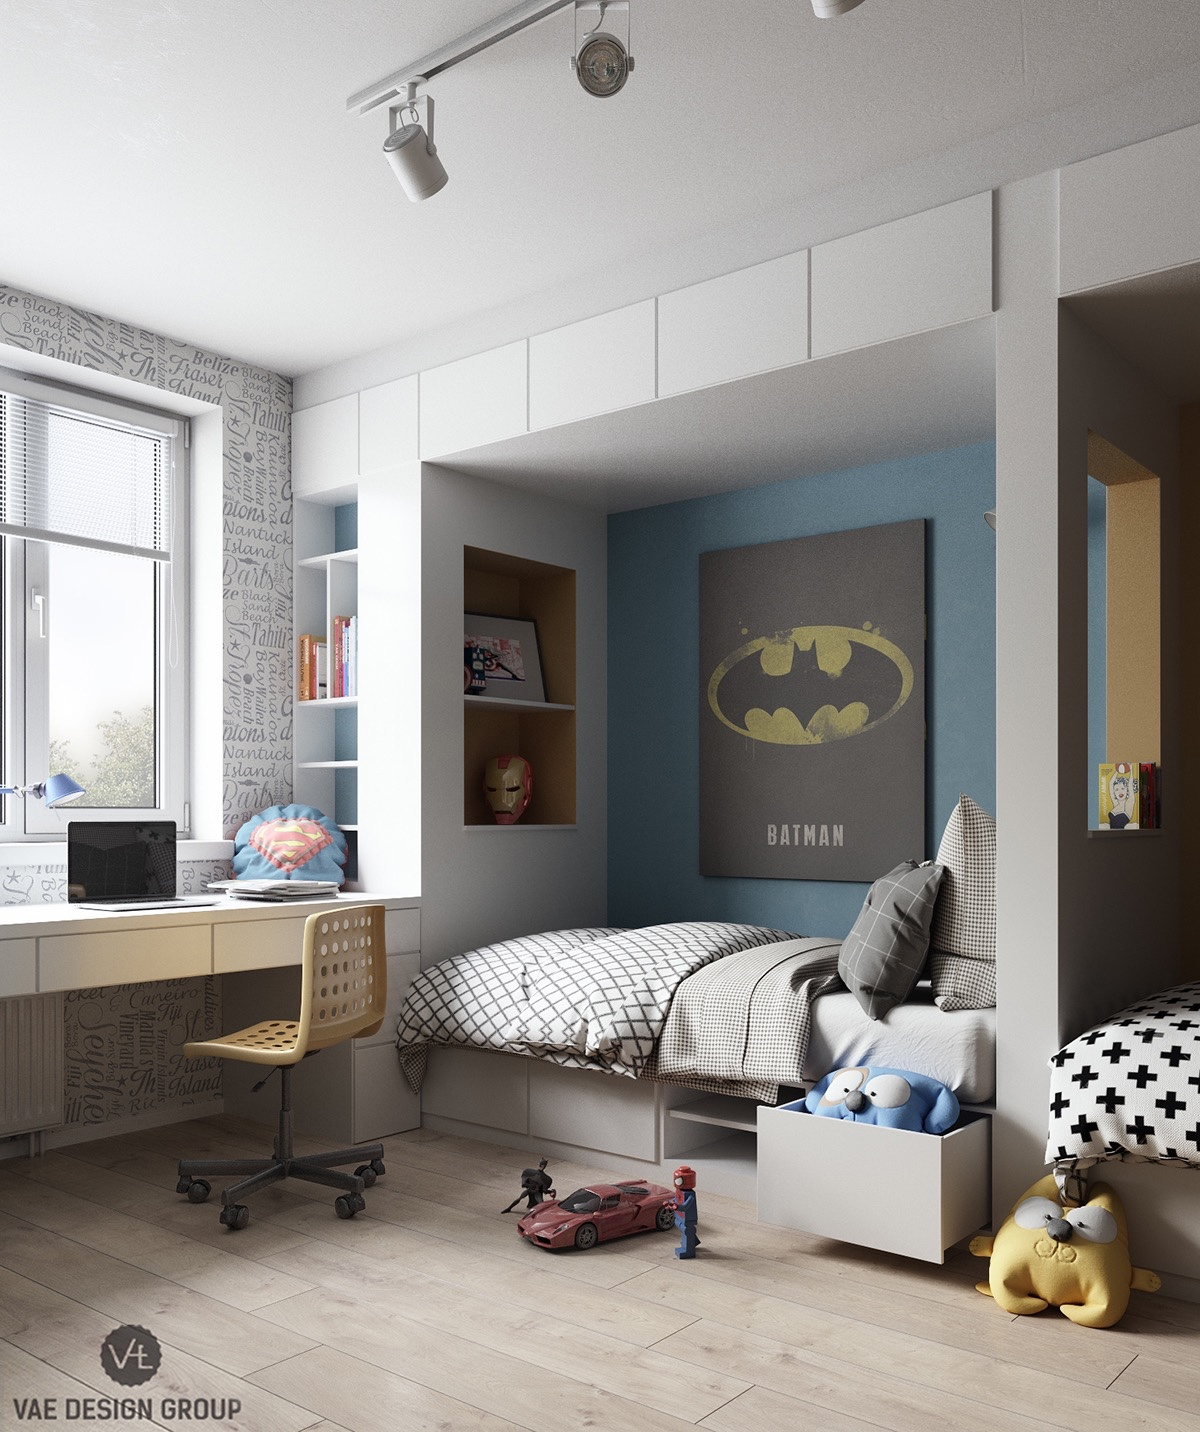 World Of Interiors: Inspiring Modern Bedrooms For Kids: Colorful, Quirky,  And Fun